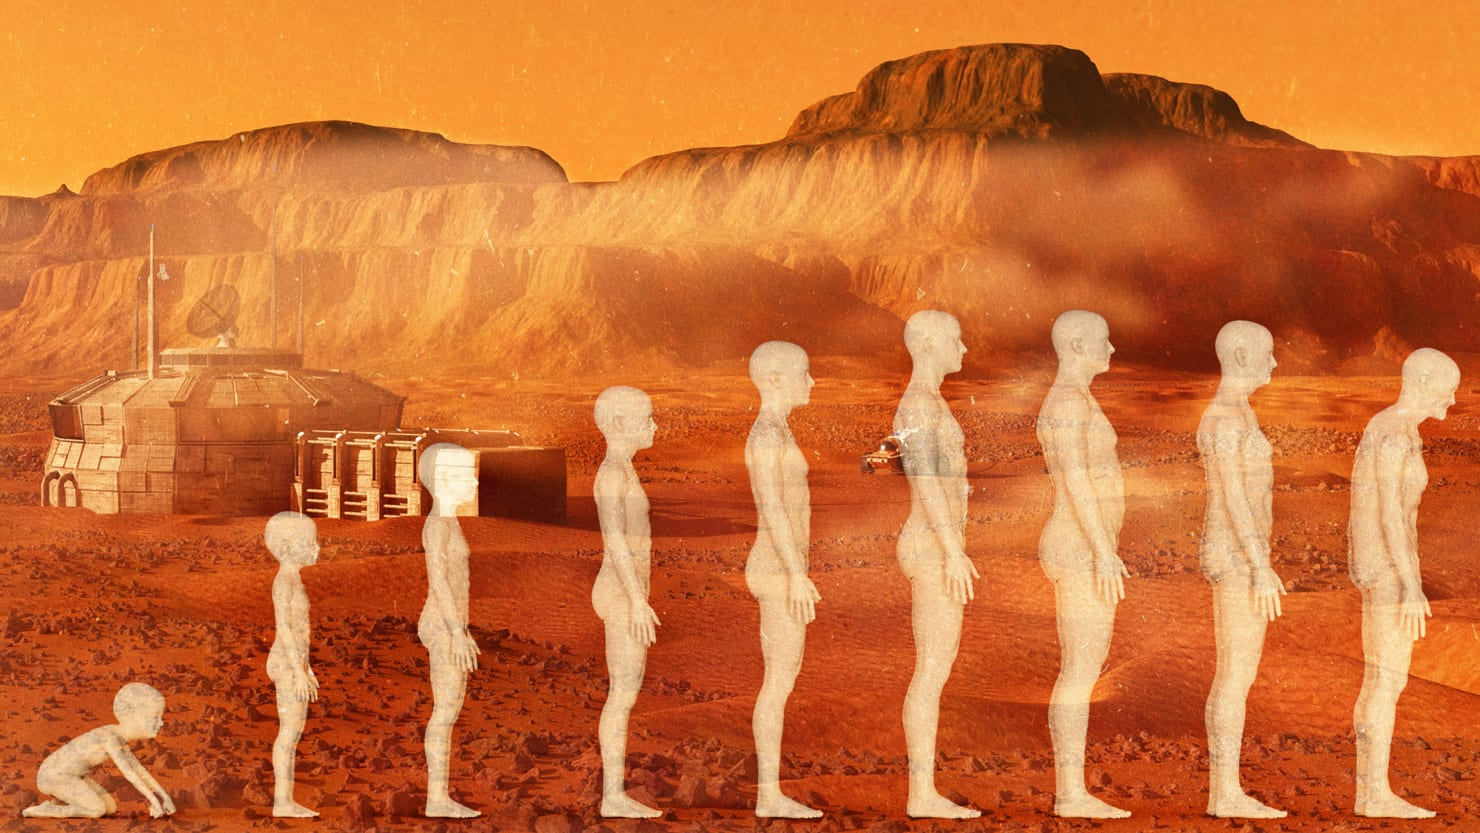 Could Life Evolve On Mars?